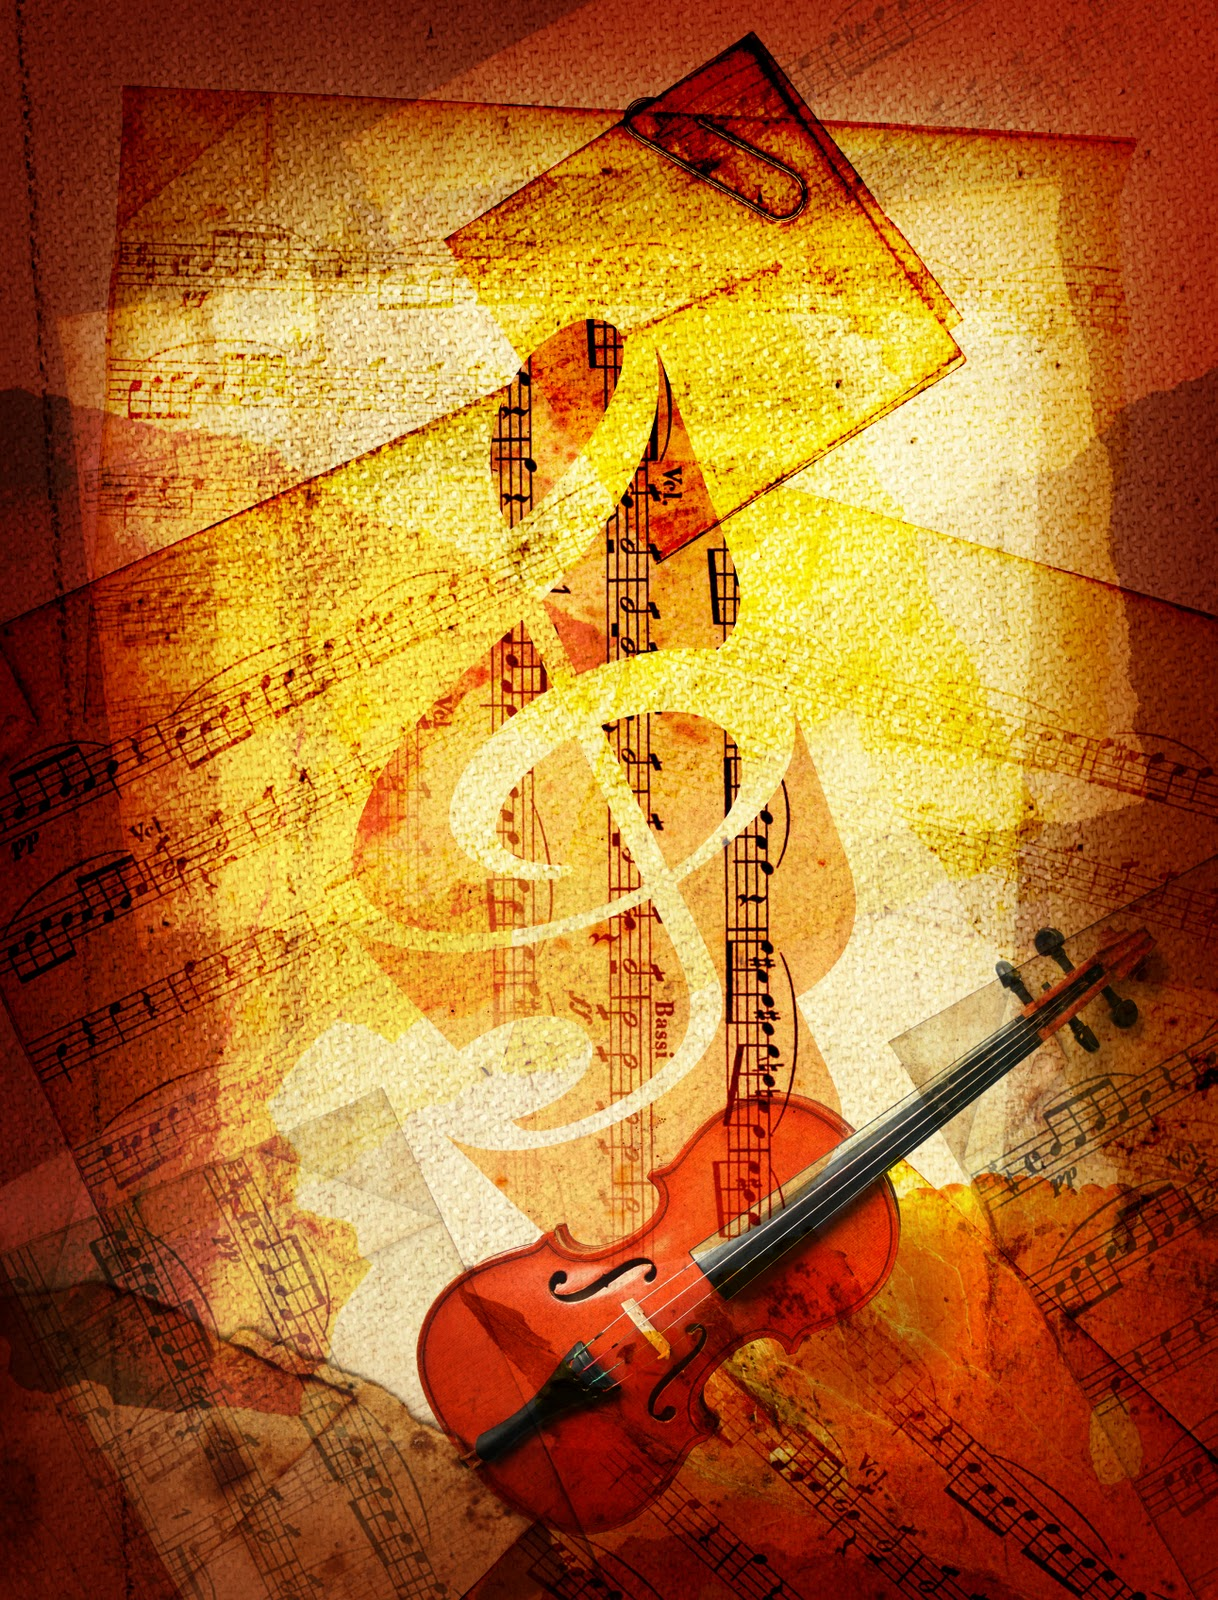 music christian backgrounds sheet flyers musical collage worship church note blessing songs flyer artists clef rgbstock pages instruments collegiate graphics